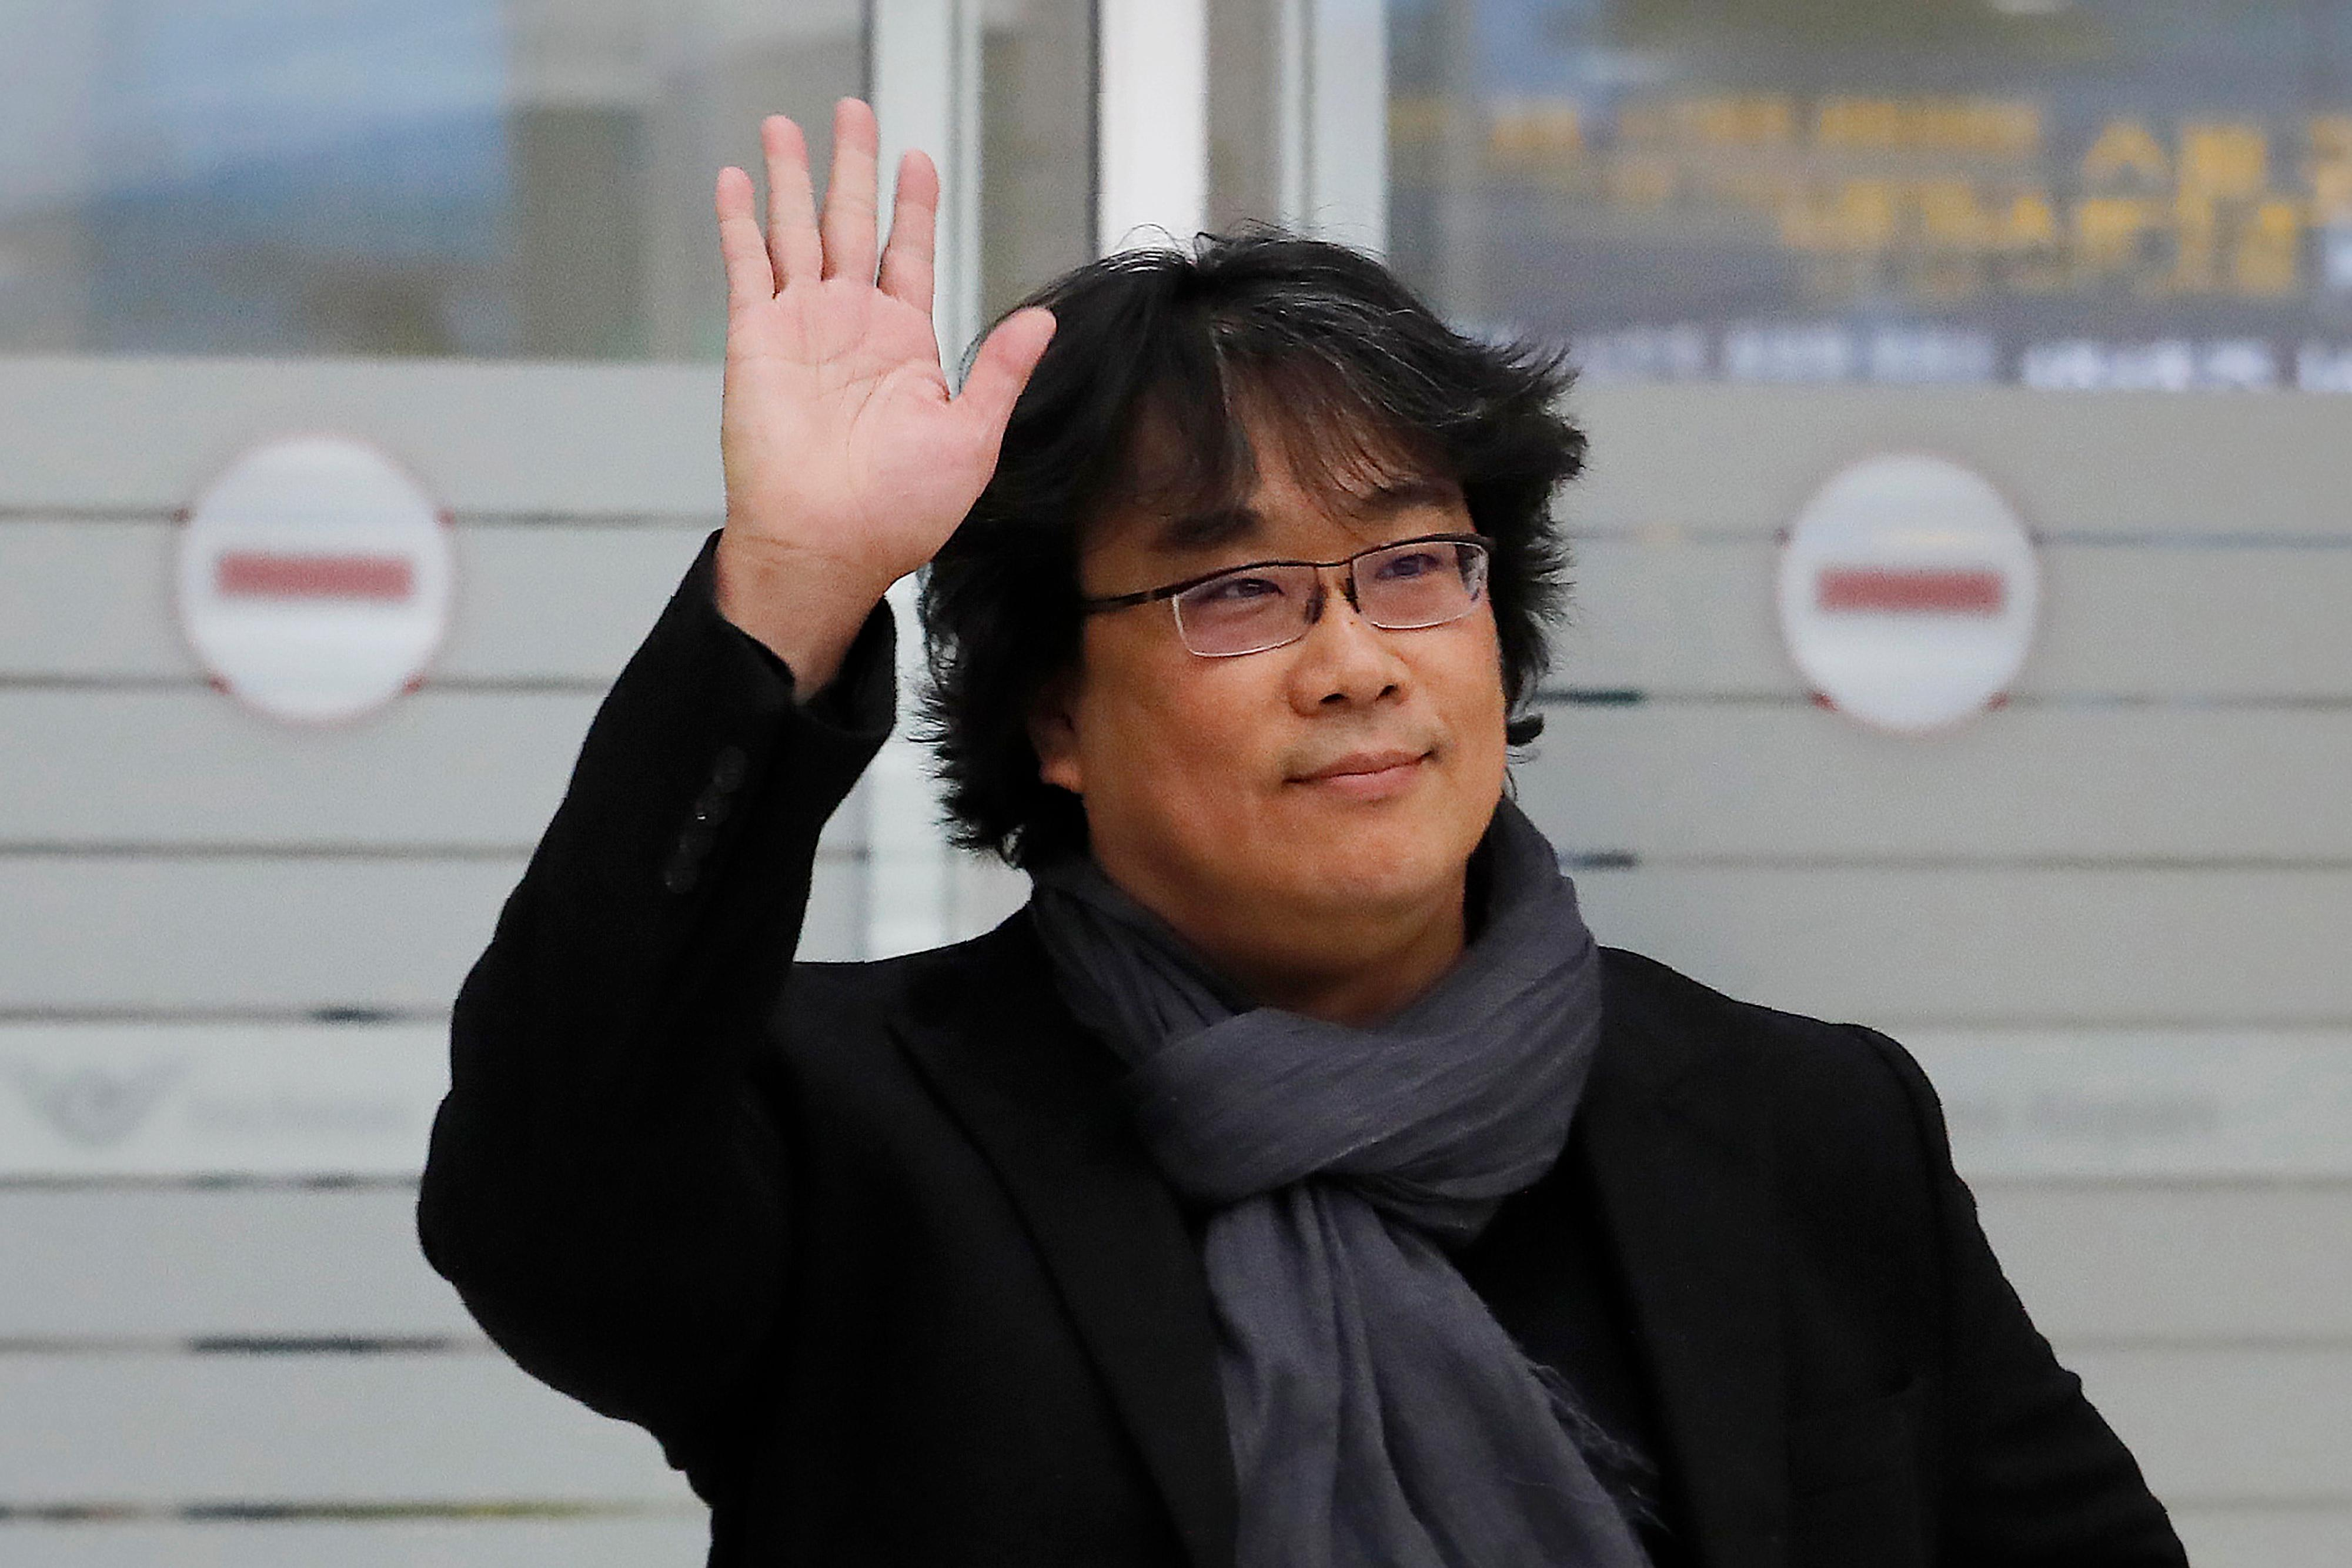 "South Korean director Bong Joon-ho waves upon his arrival at the Incheon International Airport in Incheon, South Korea, Sunday, Feb. 16, 2020. South Koreans are reveling in writer-director Bong's dark comic thriller, ""Parasite,"" which won this year's Academy Awards for best film and best international feature. The movie itself, however, doesn't put the country in a particularly positive light. (AP Photo/Ahn Young-joon)"